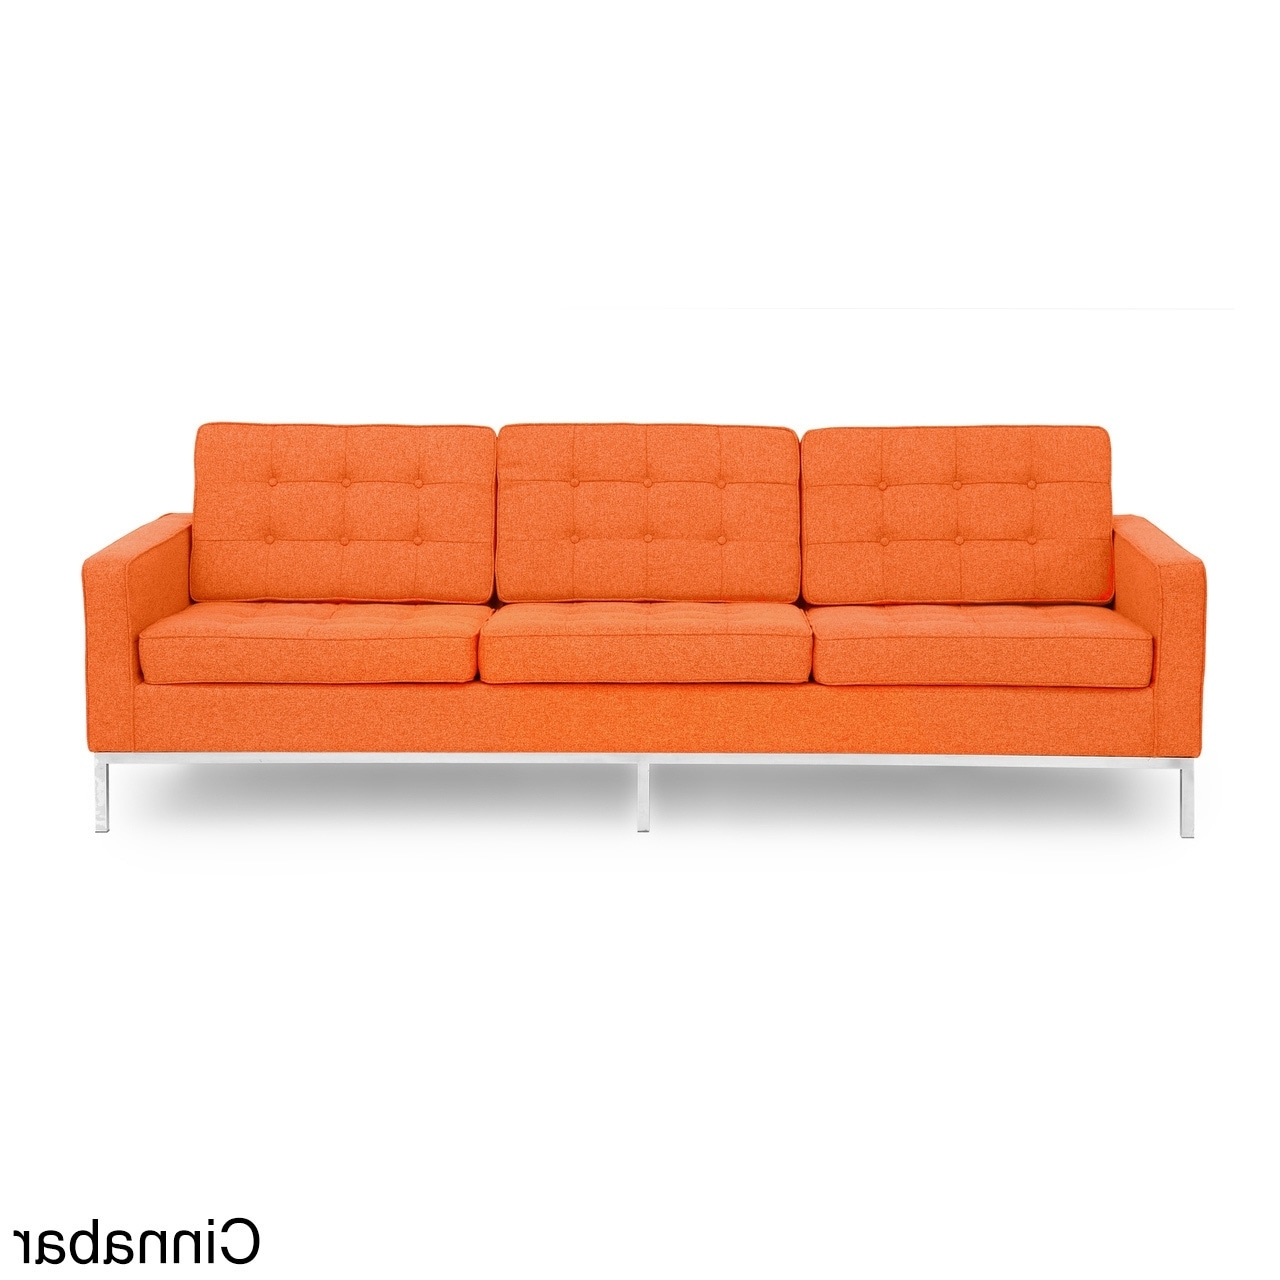 Kardiel Florence Knoll Style Sofa 3 Seat, Premium Fabric Within Well Known Florence Knoll Style Sofas (View 14 of 15)